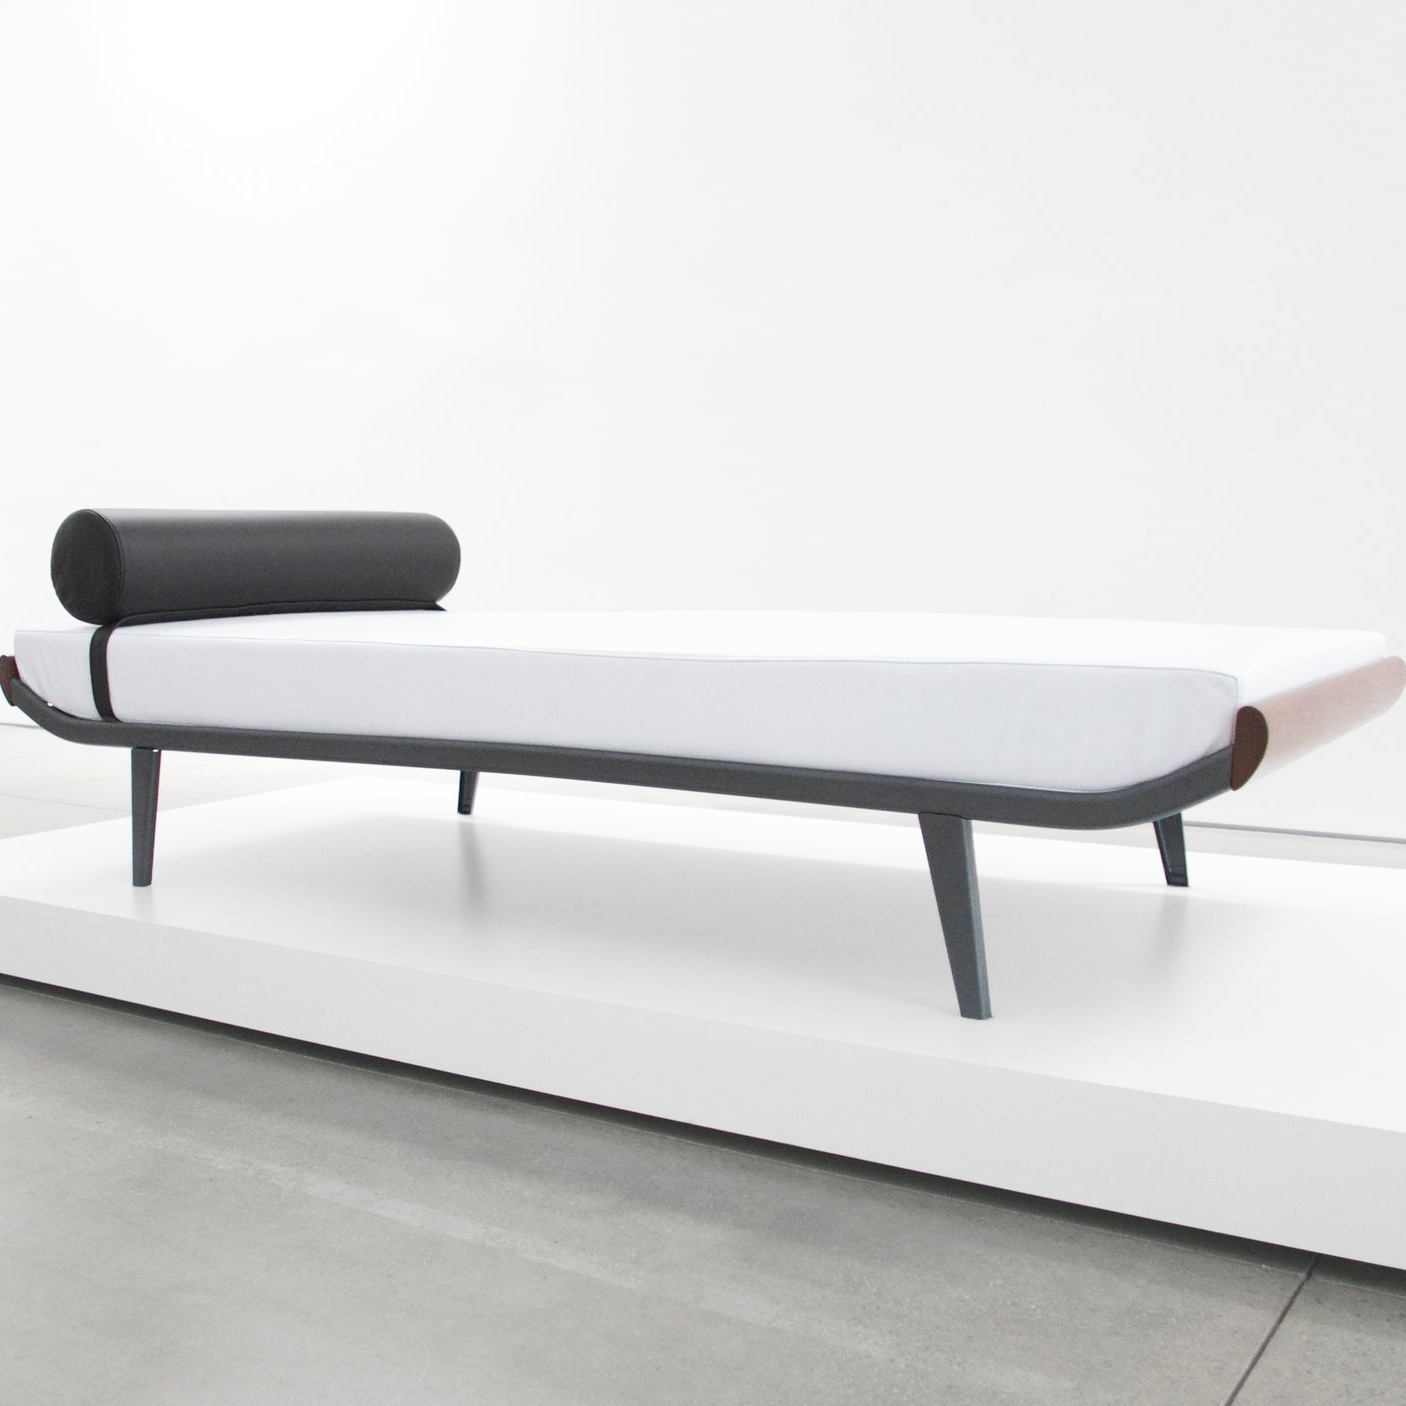 a.r. cordemijer 'cleopatra' daybed for aupin sold